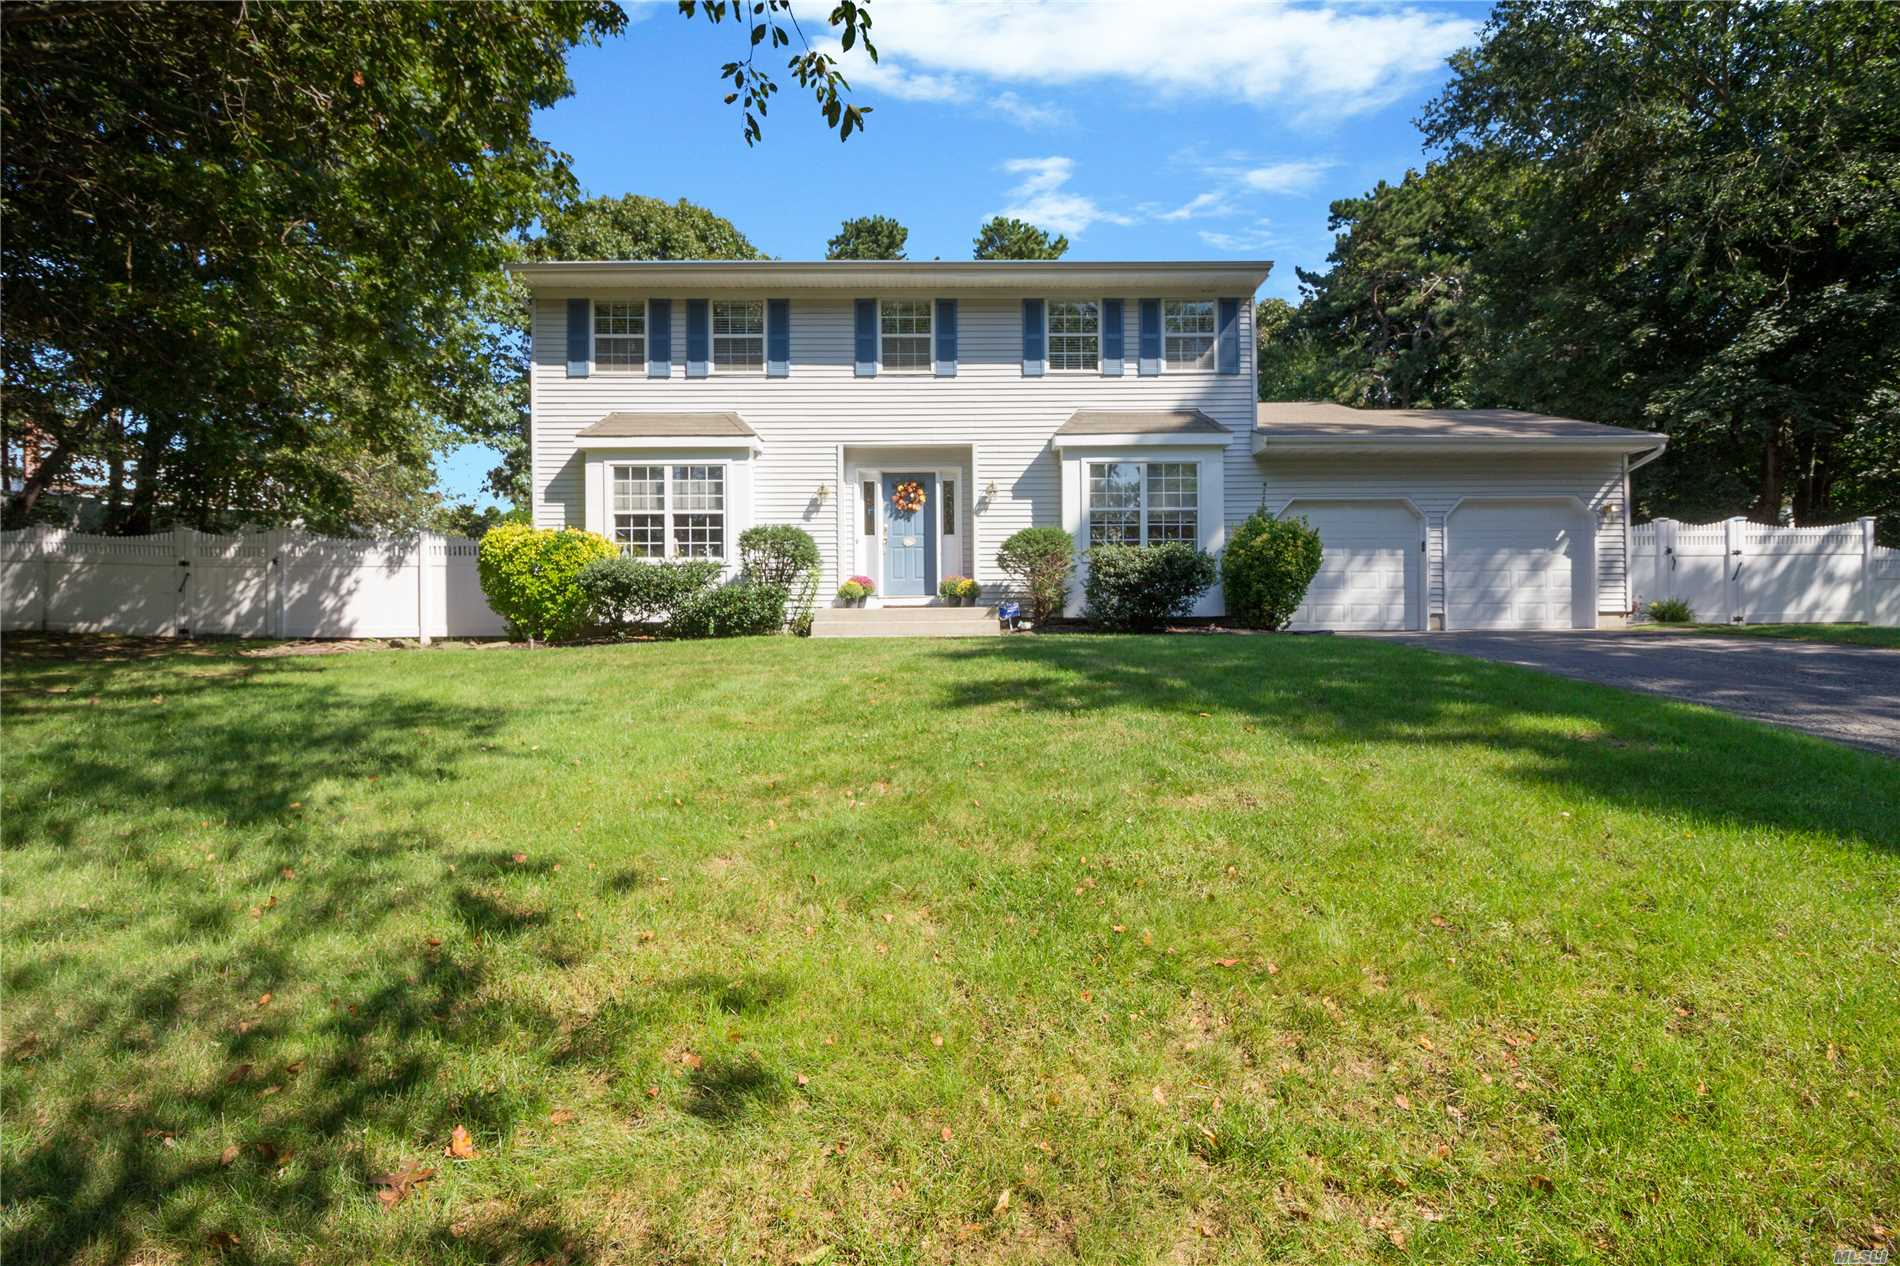 Photo of home for sale at 9 Pia Ct, Hauppauge NY